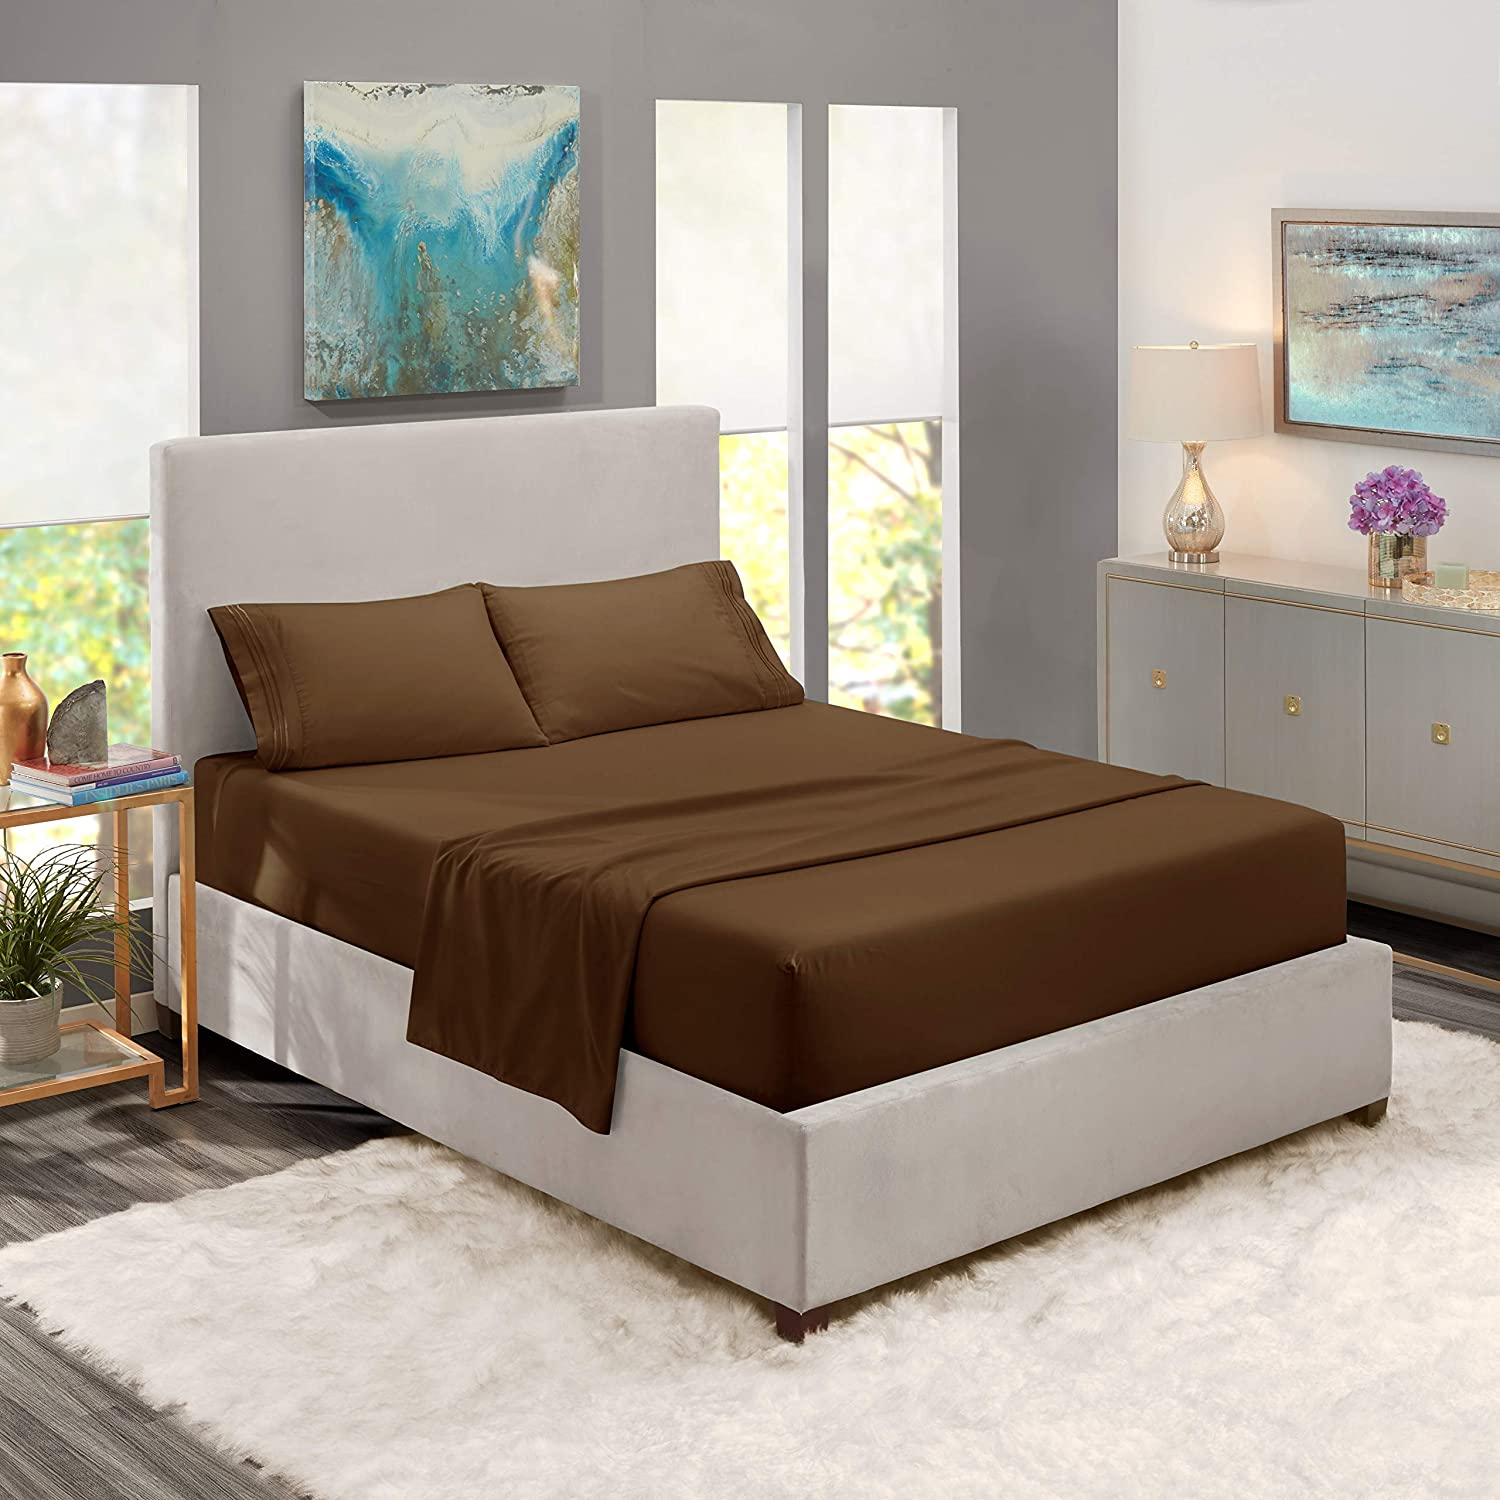 """Nestl Bedding Soft Sheets Set – 4 Piece Bed Sheet Set, 3-Line Design Pillowcases – Easy Care, Wrinkle Free – 10""""–16"""" Good Fit Deep Pockets Fitted Sheet – Warranty Included – King, Brown"""